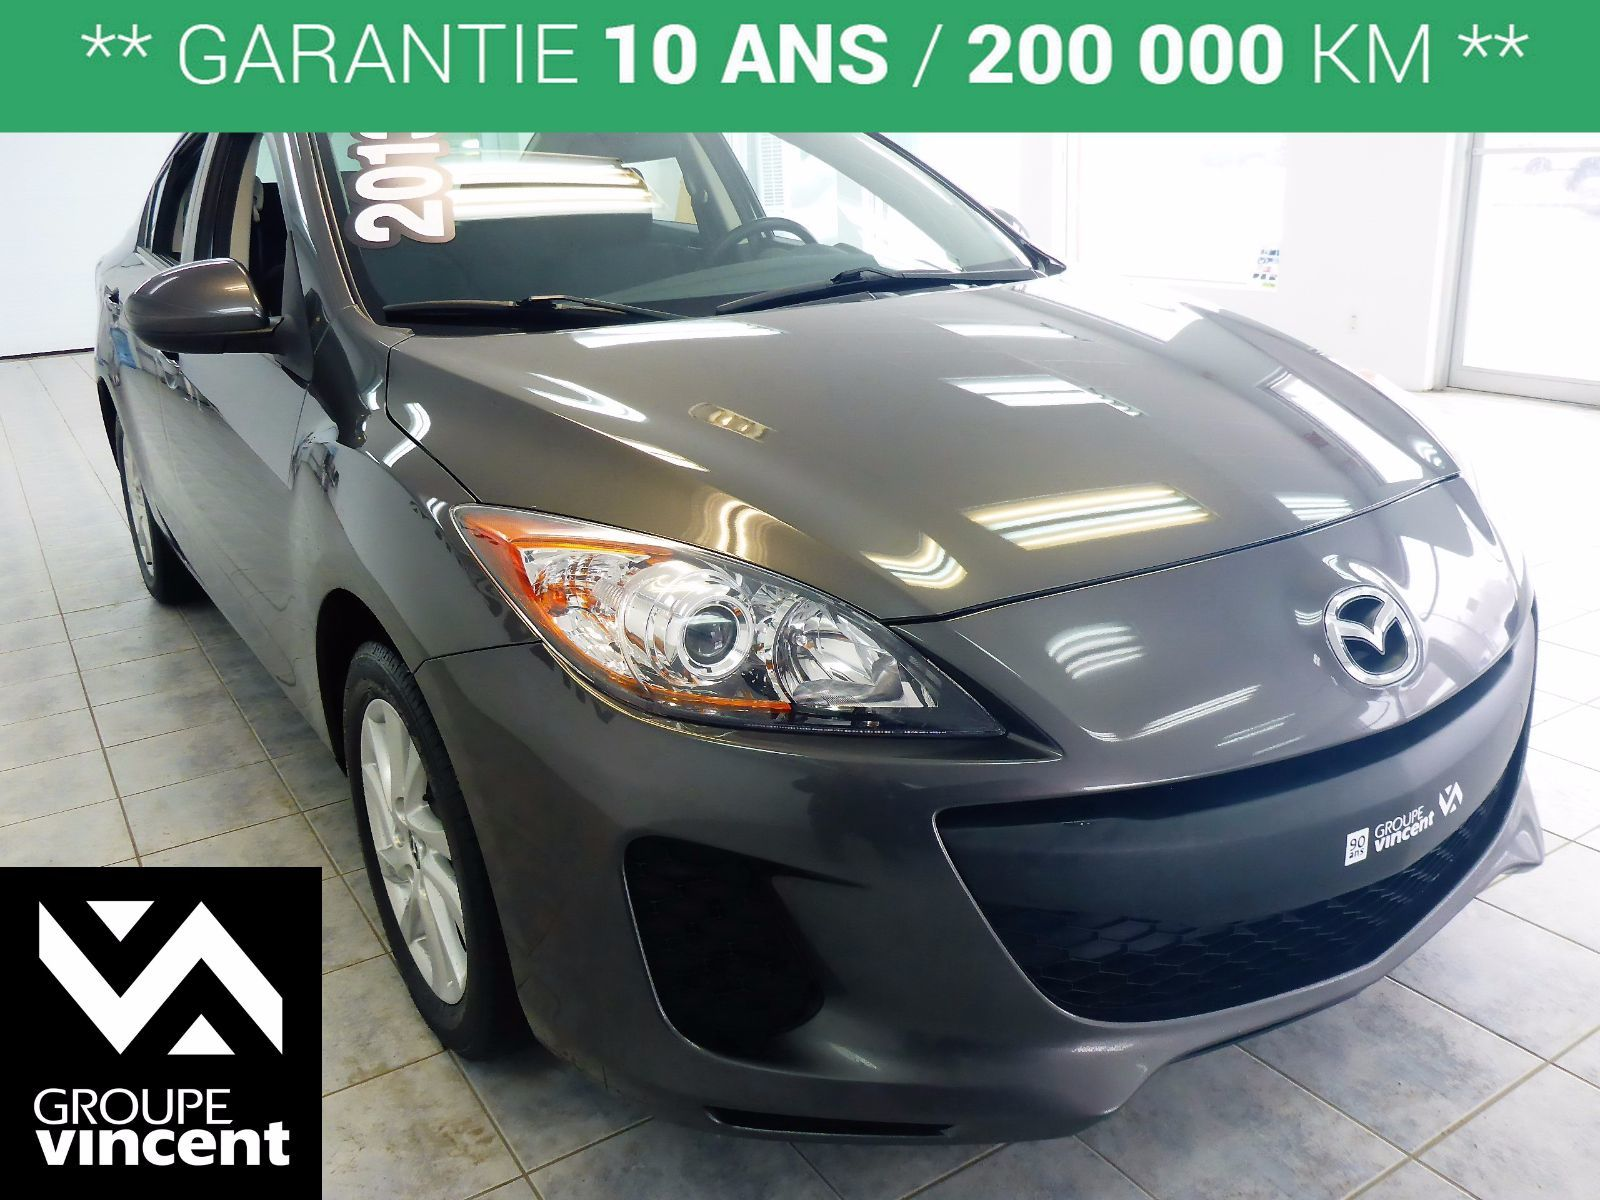 mazda 3 gx automatique 2013 d 39 occasion trois rivi res hyundai trois rivi res g3666am. Black Bedroom Furniture Sets. Home Design Ideas